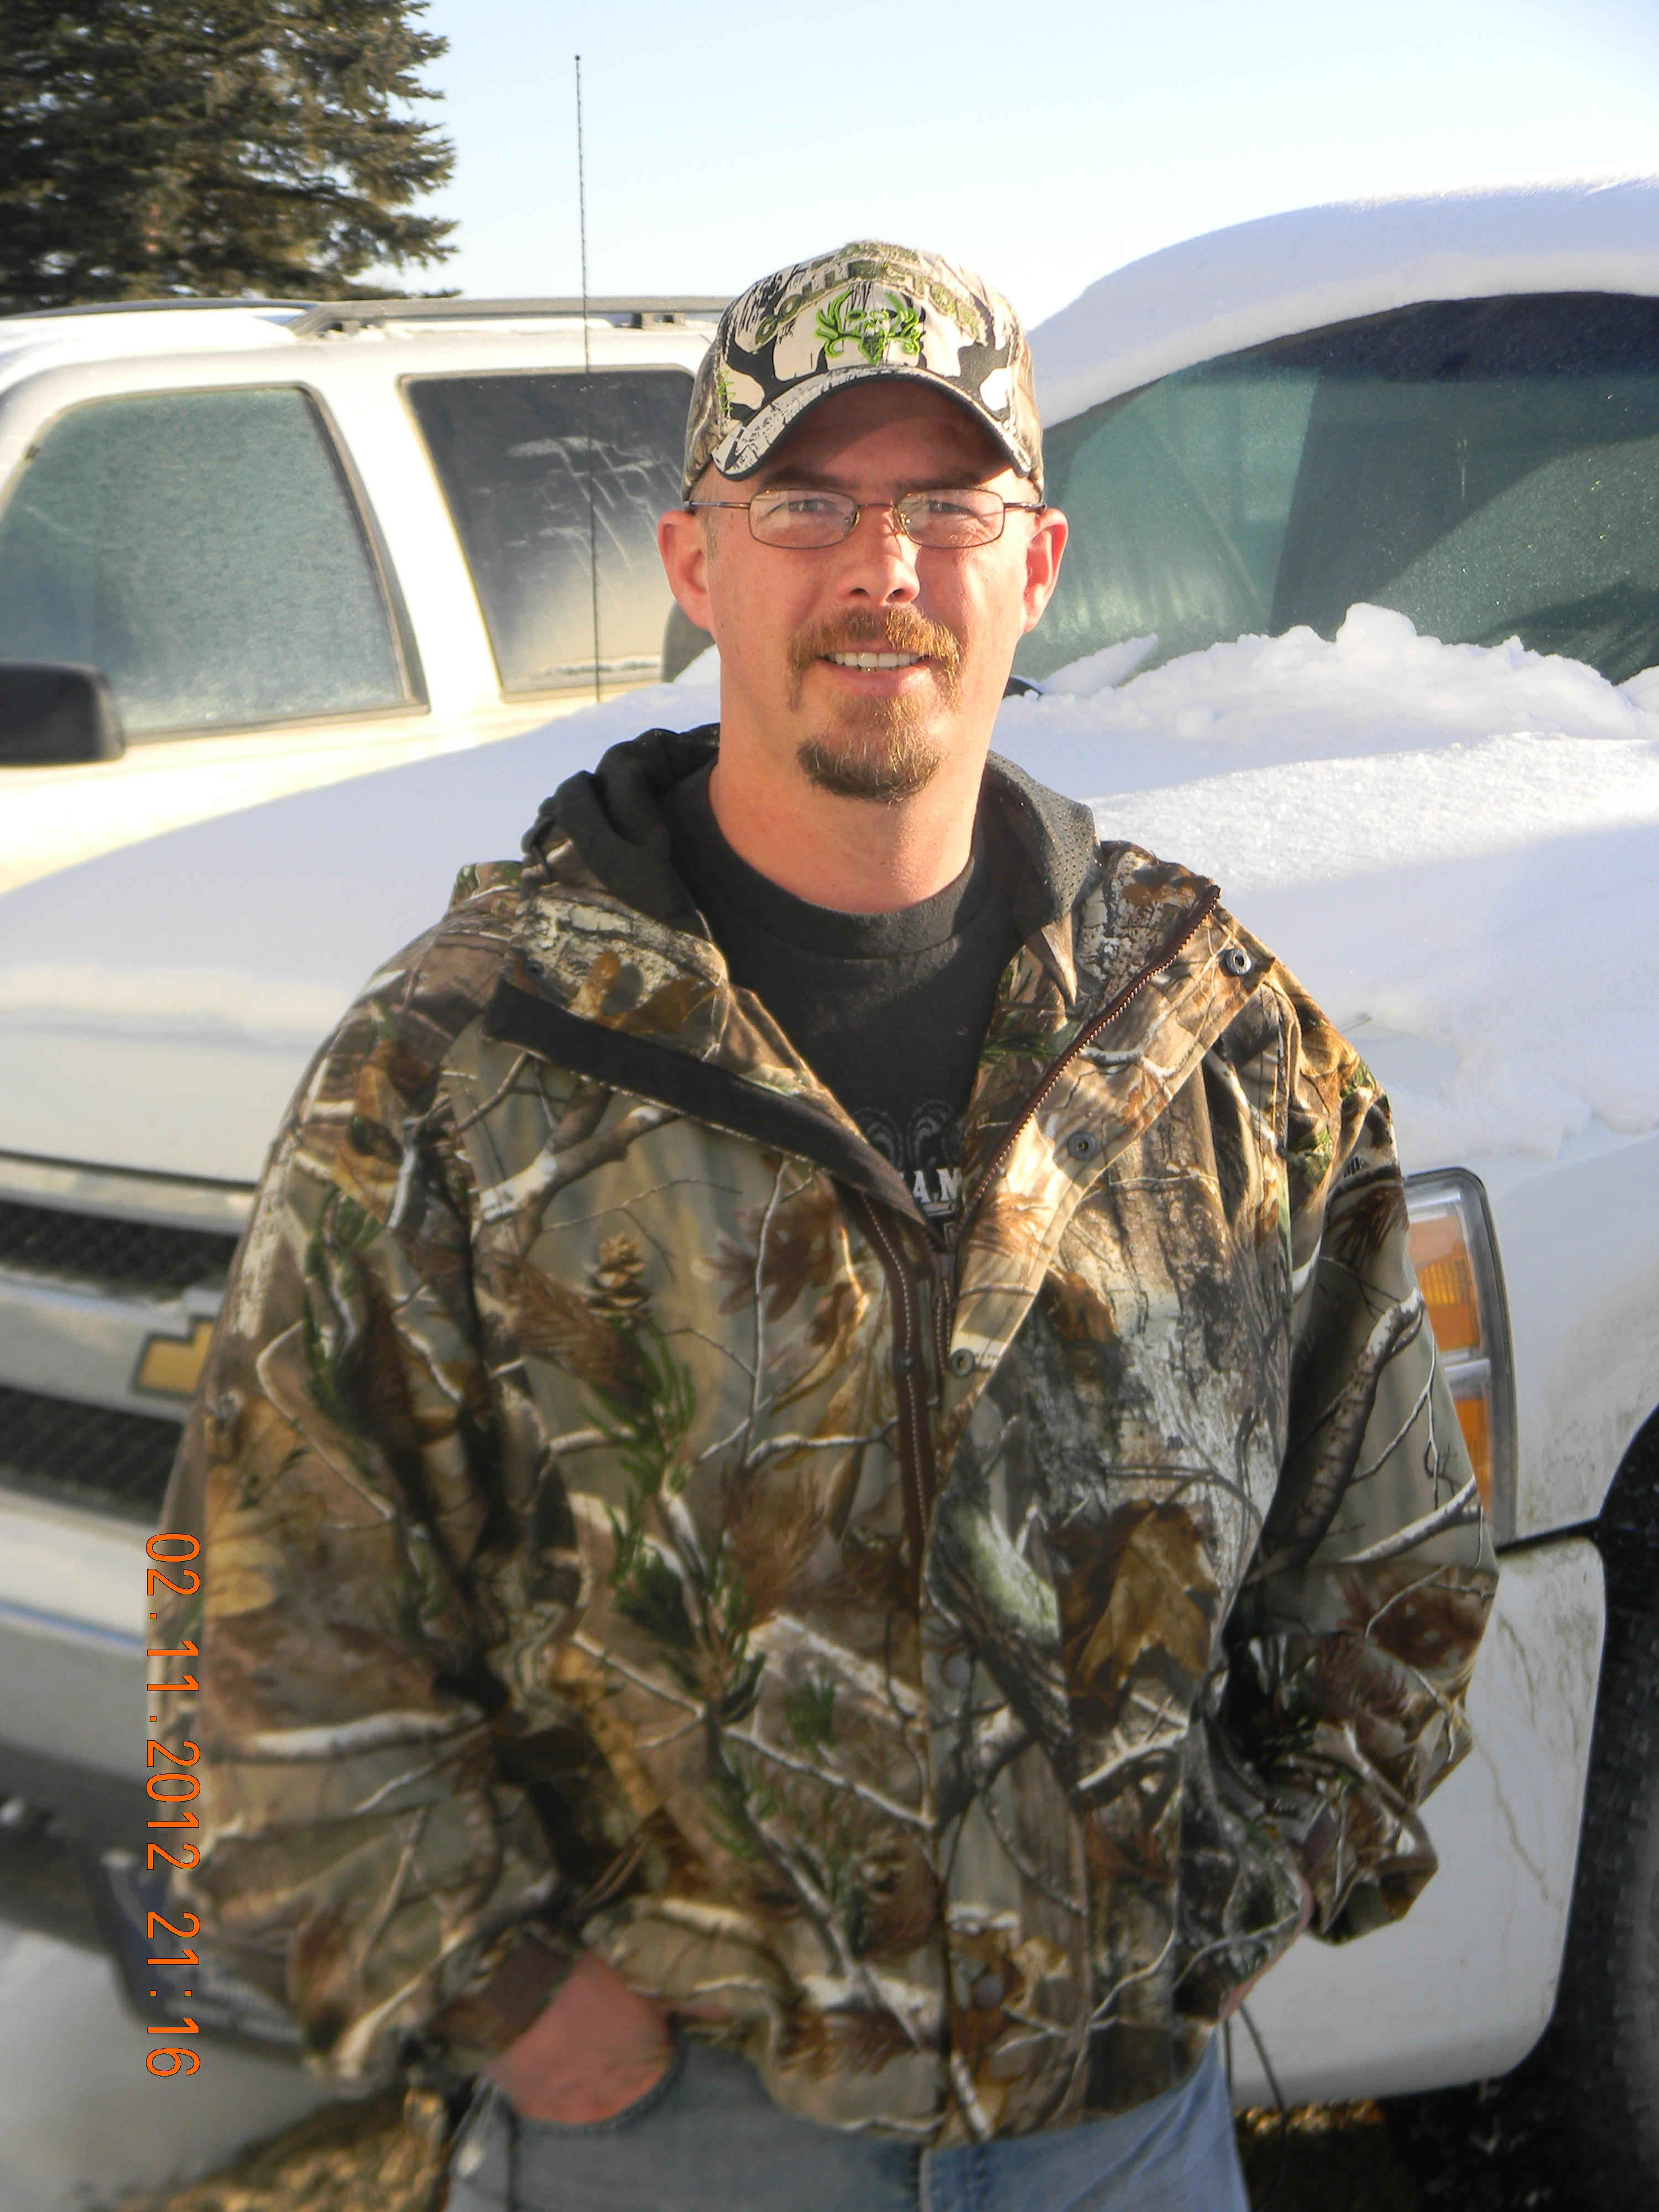 hunting outfitter guide Roger